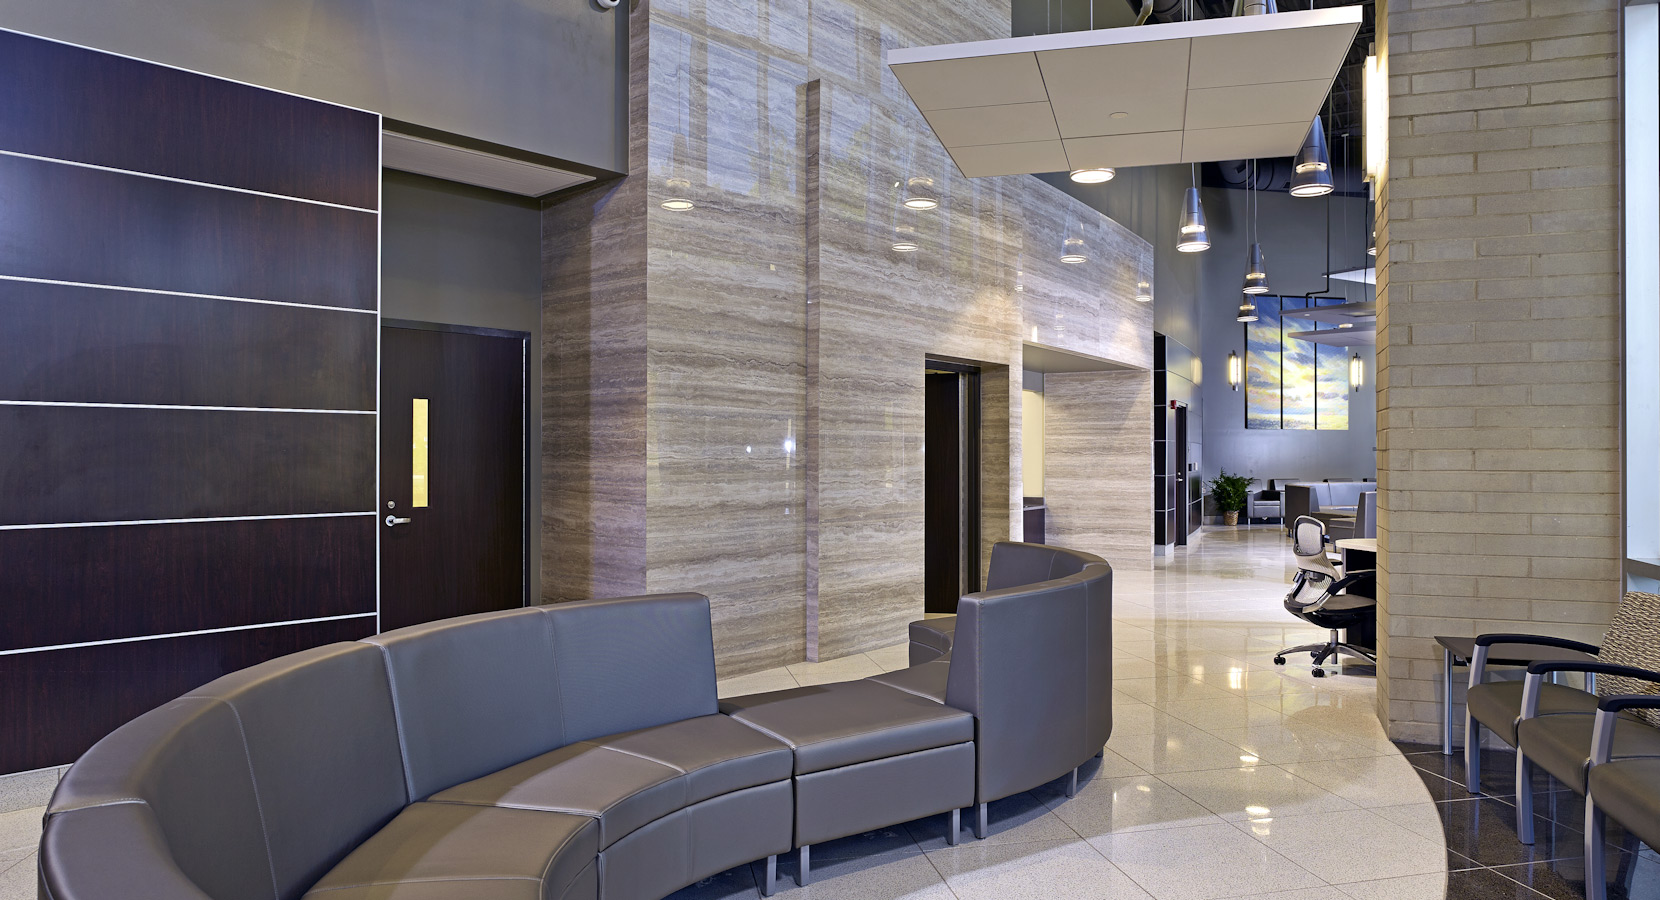 Birmingham commercial interior design by design innovations for Designing interiors inc